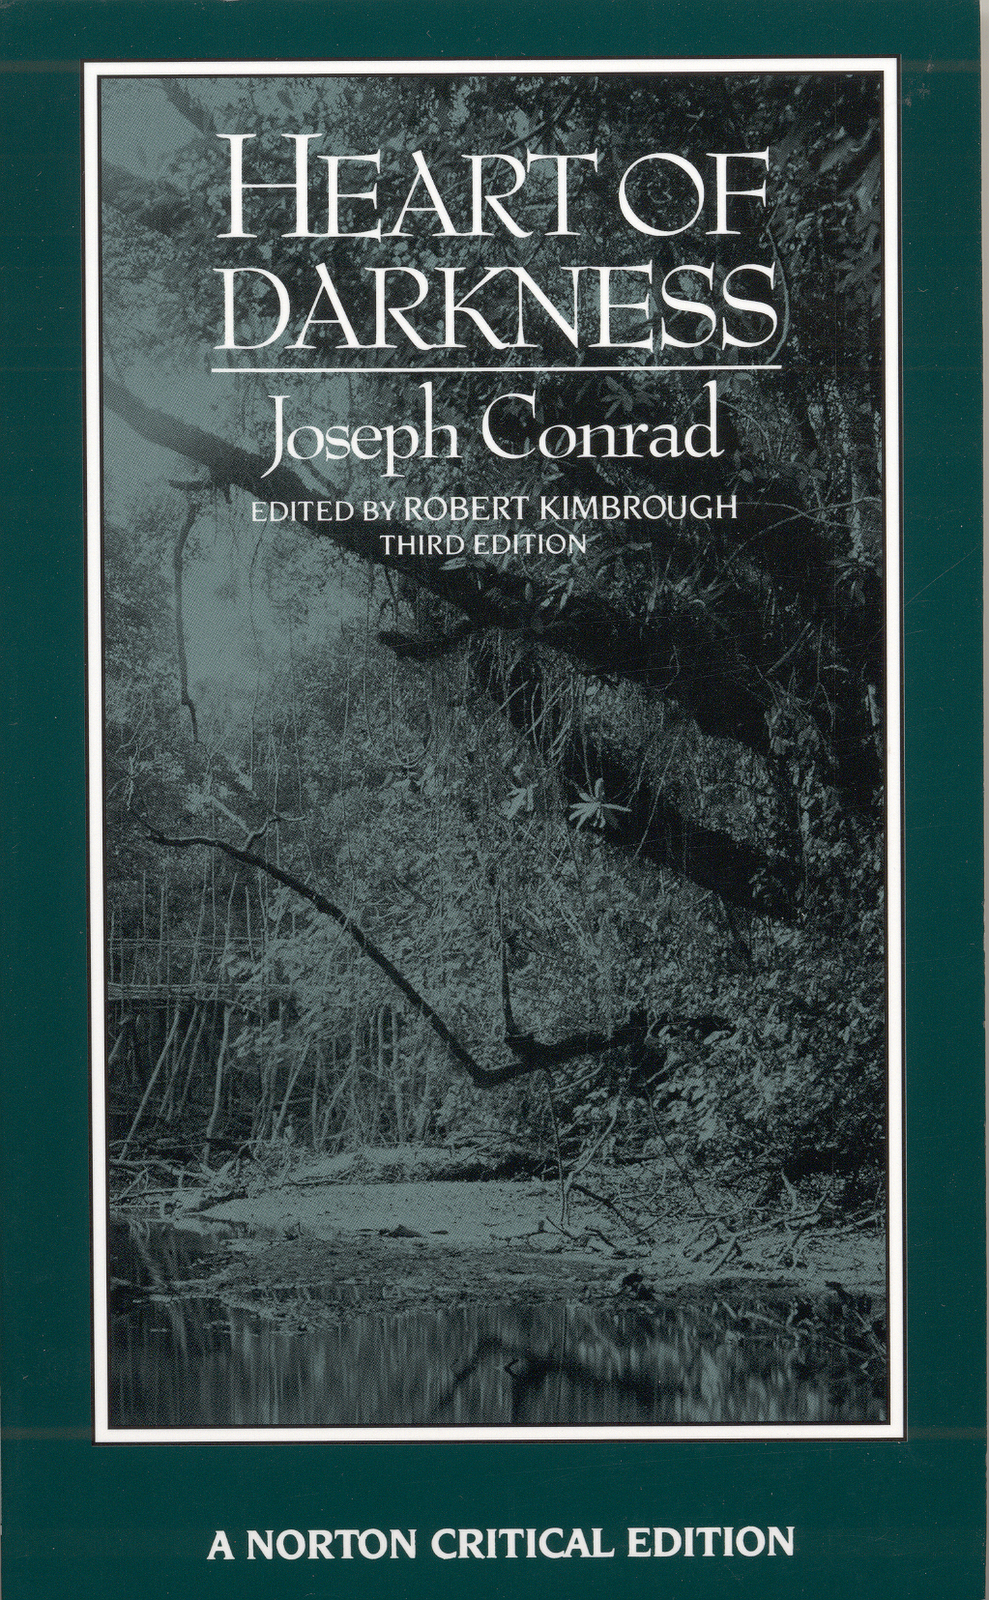 analysis essay on heart of darkness Essay joseph conrad, in his long-short story, ³heart of darkness,² tells the tale of two mens¹ realization of the hidden, dark, evil side of themselves.